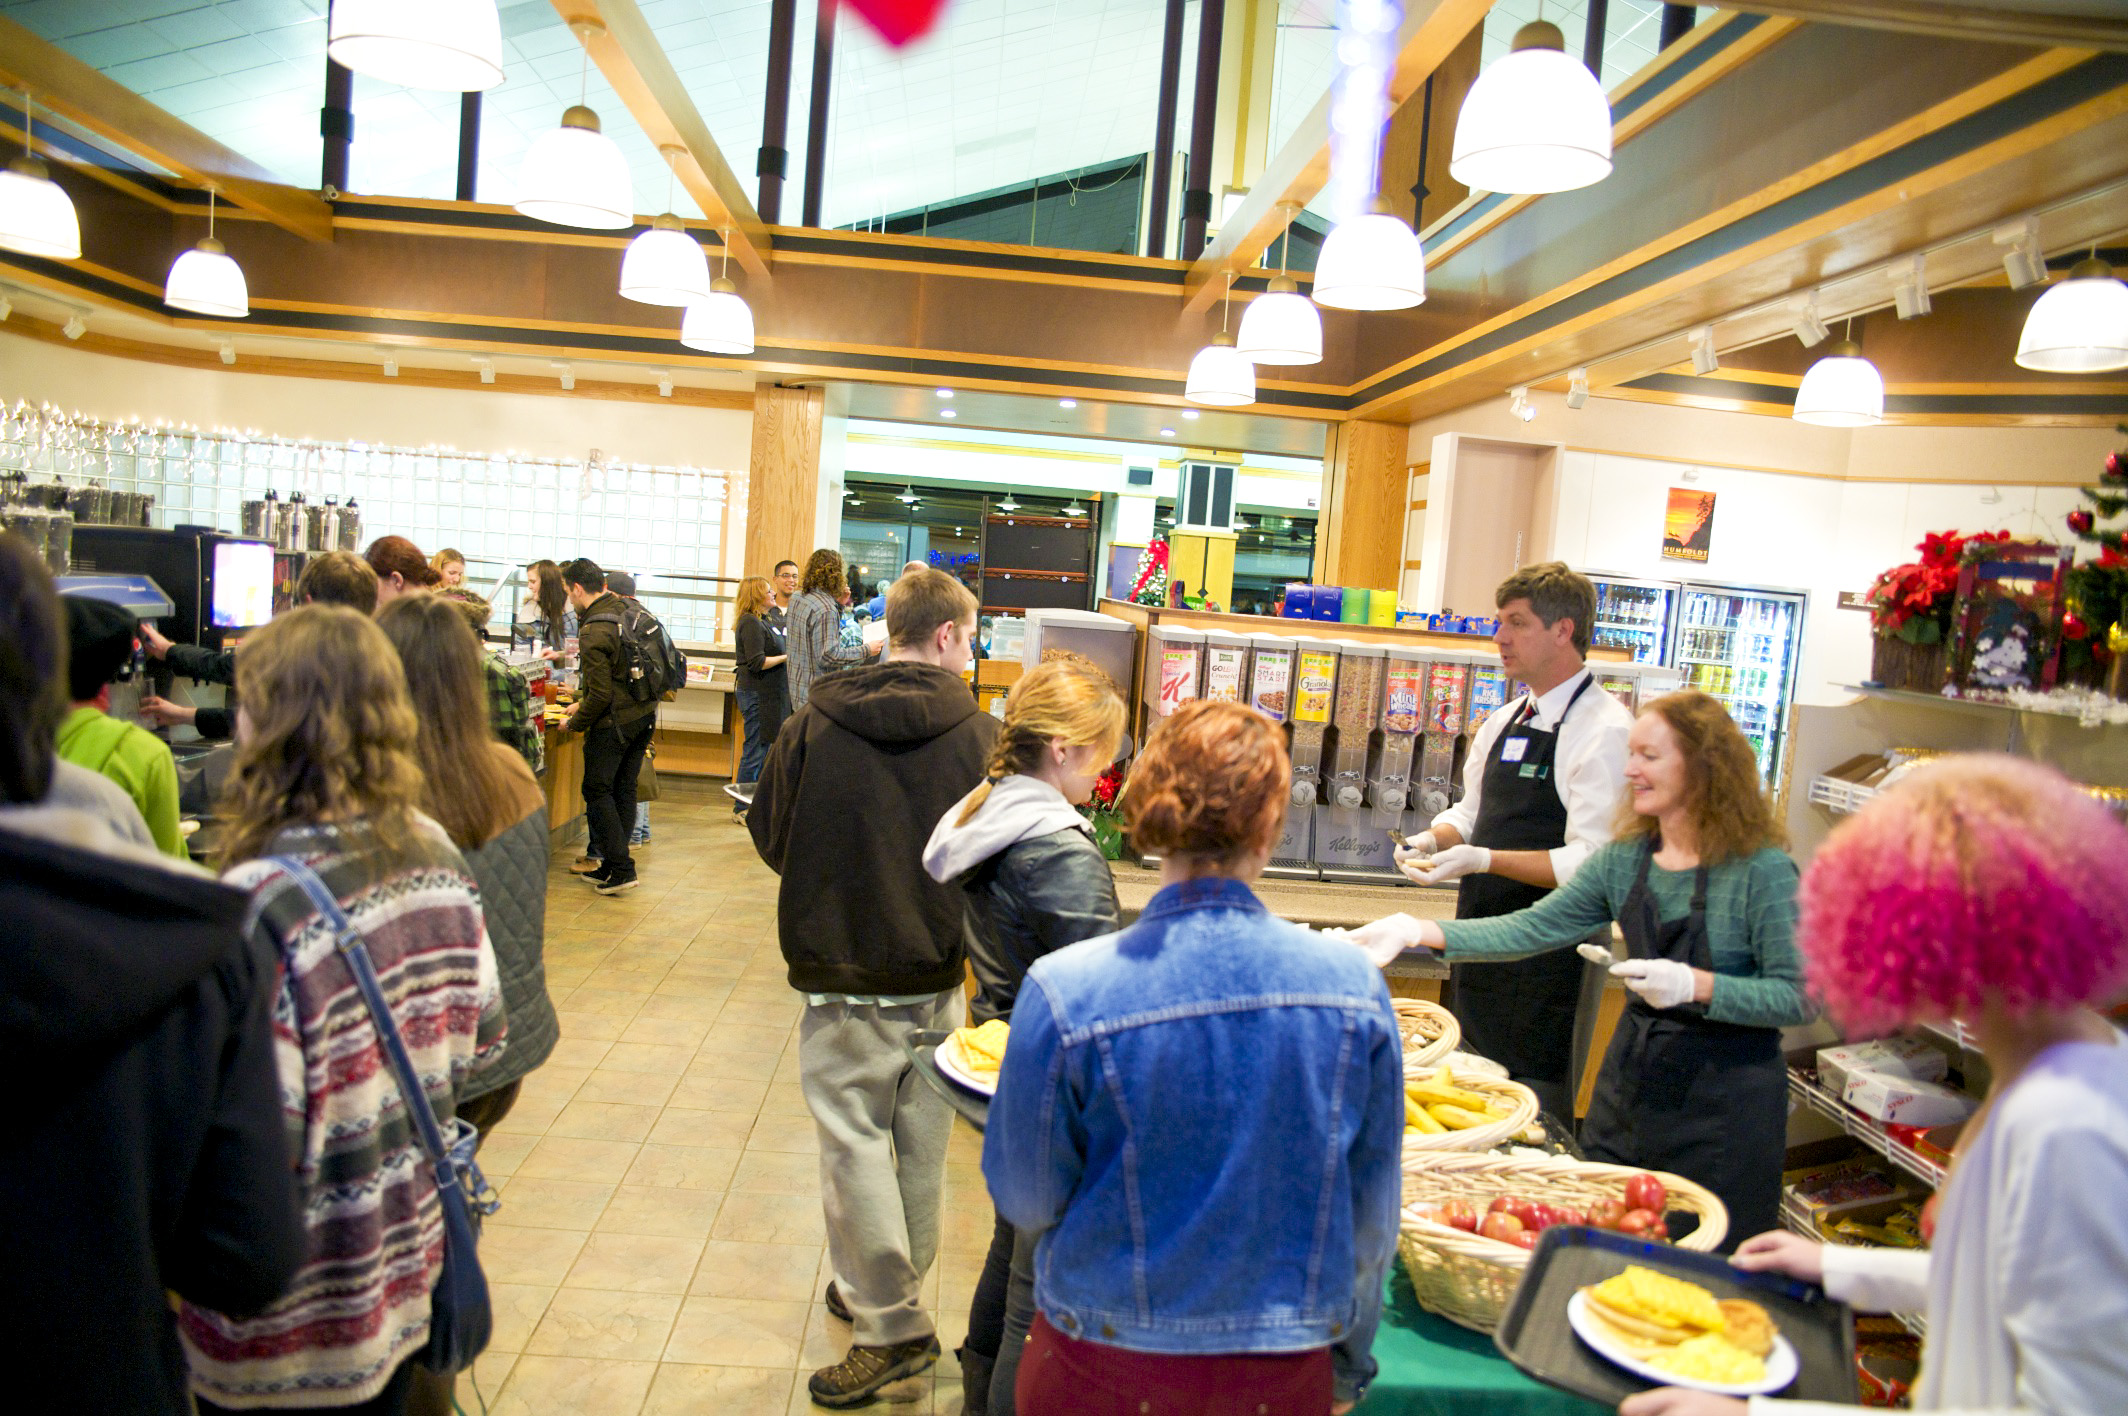 The Jolly Giant Commons Dining Service Area